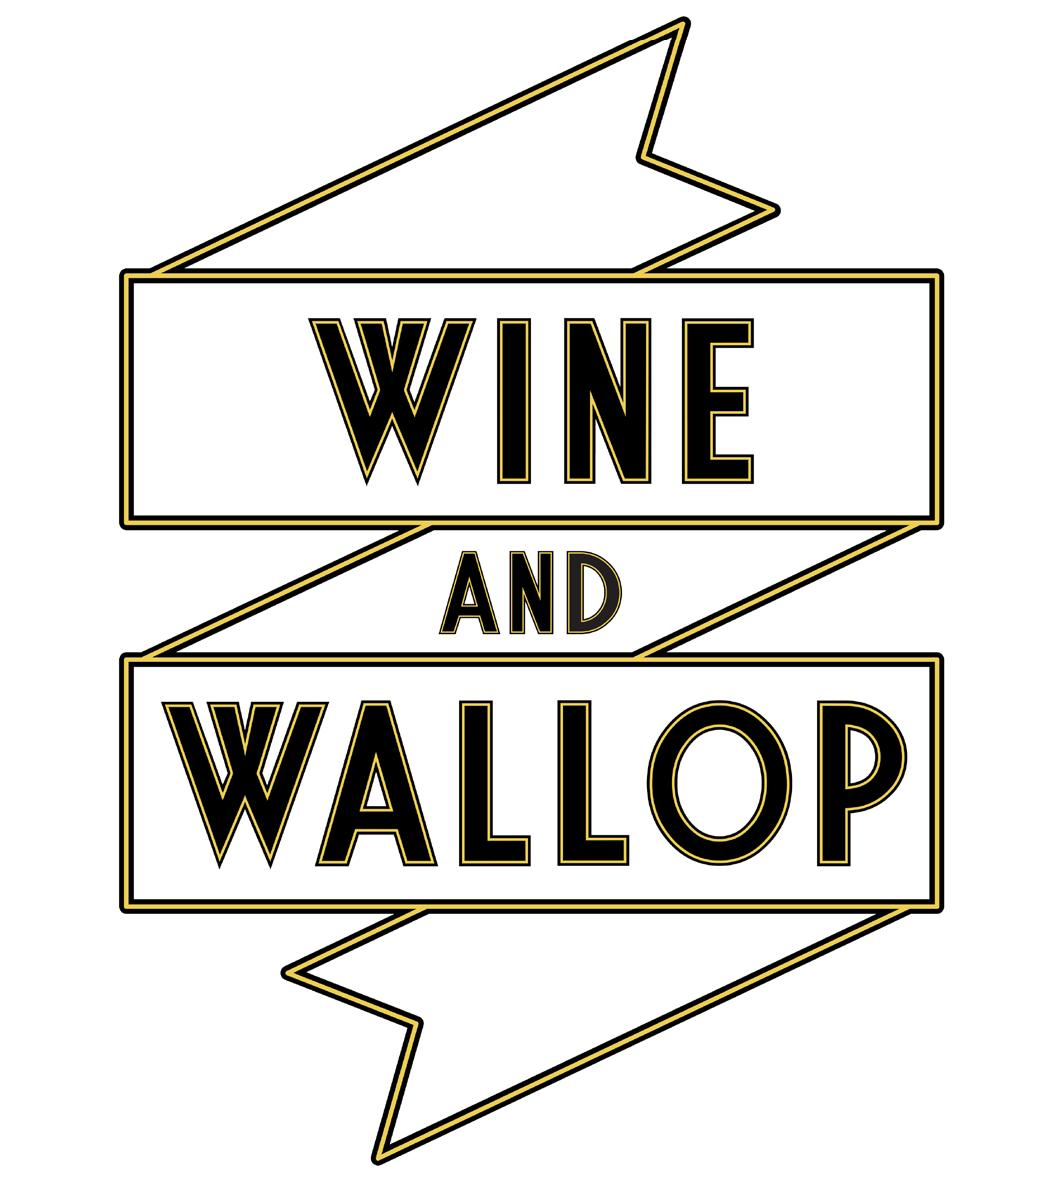 Wine and Wallop